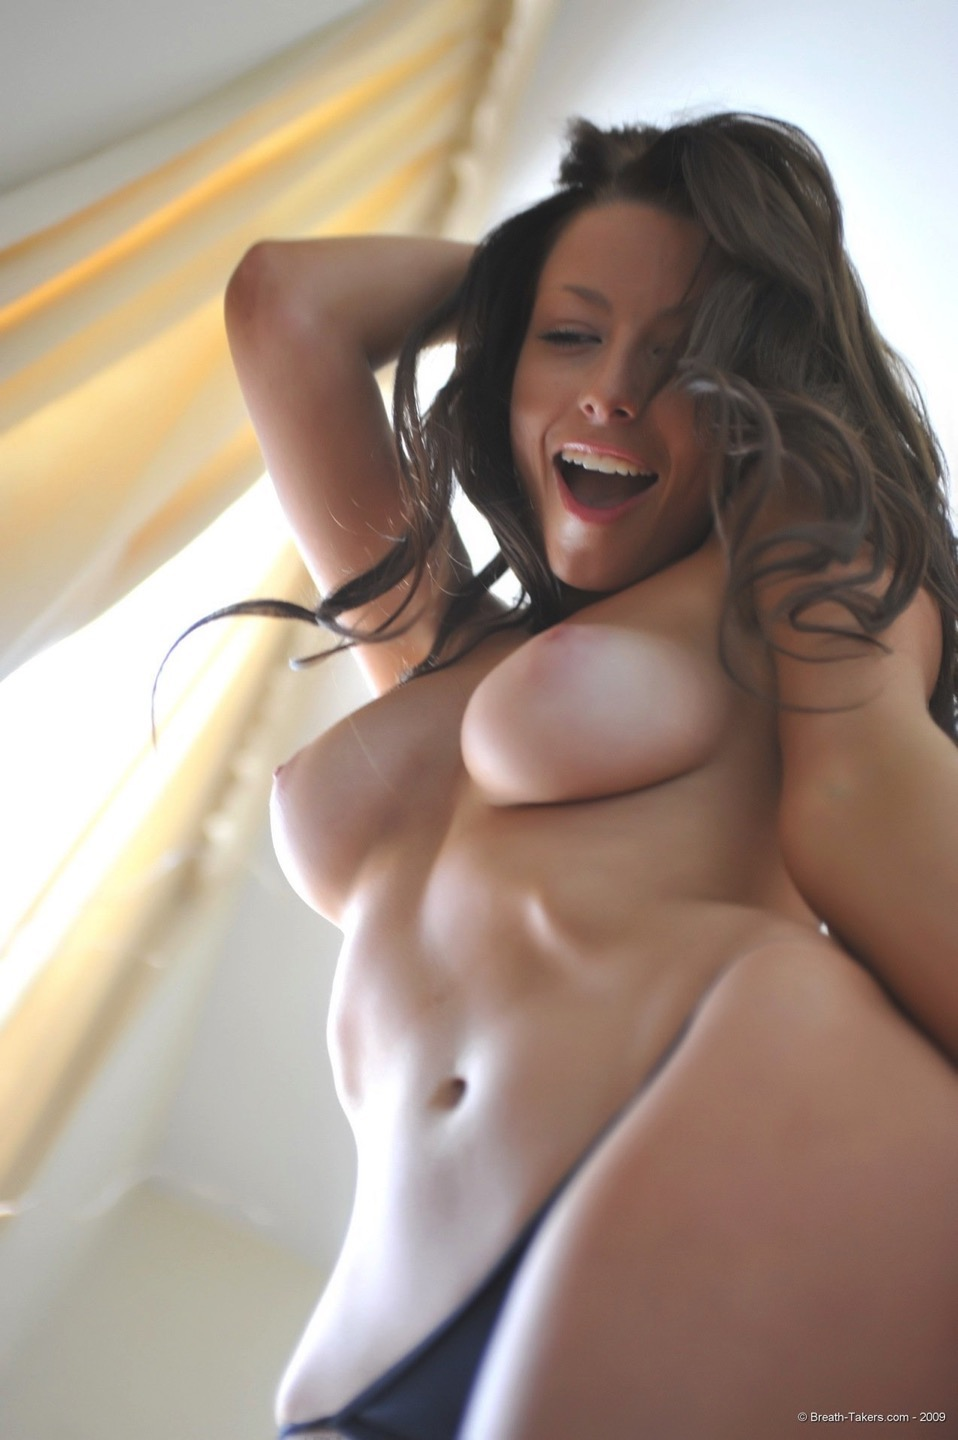 showing images for victoria banxxx facial gif xxx Amateur, Boobs, Caption, Flashing, Phone, Selfie, Selfie, Teen, Tits, Young